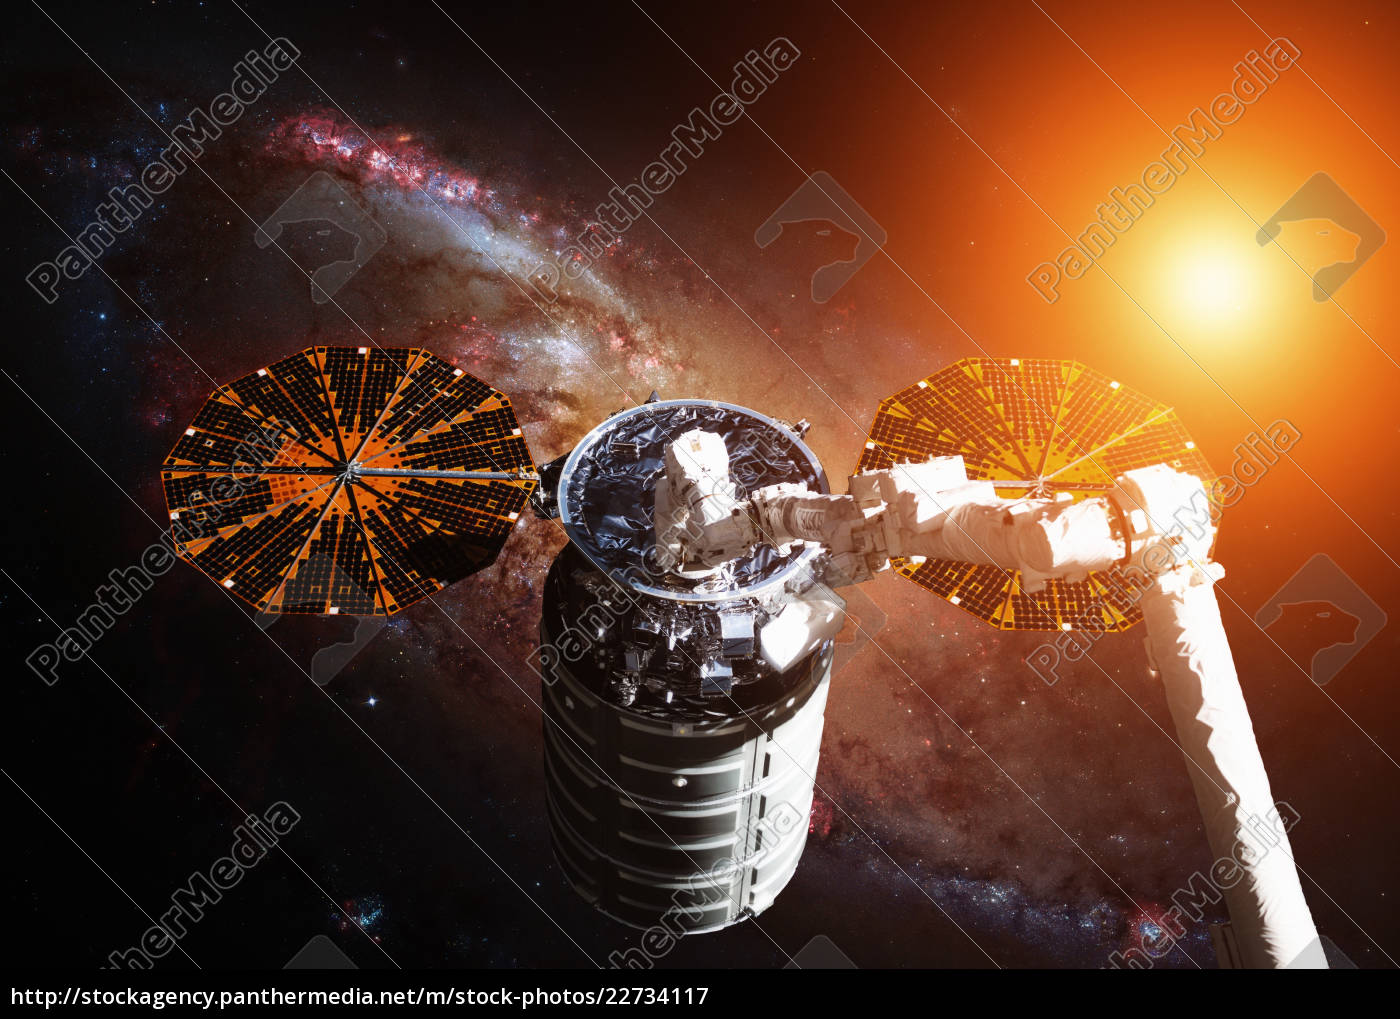 the, cygnus, spacecraft, in, open, space. - 22734117